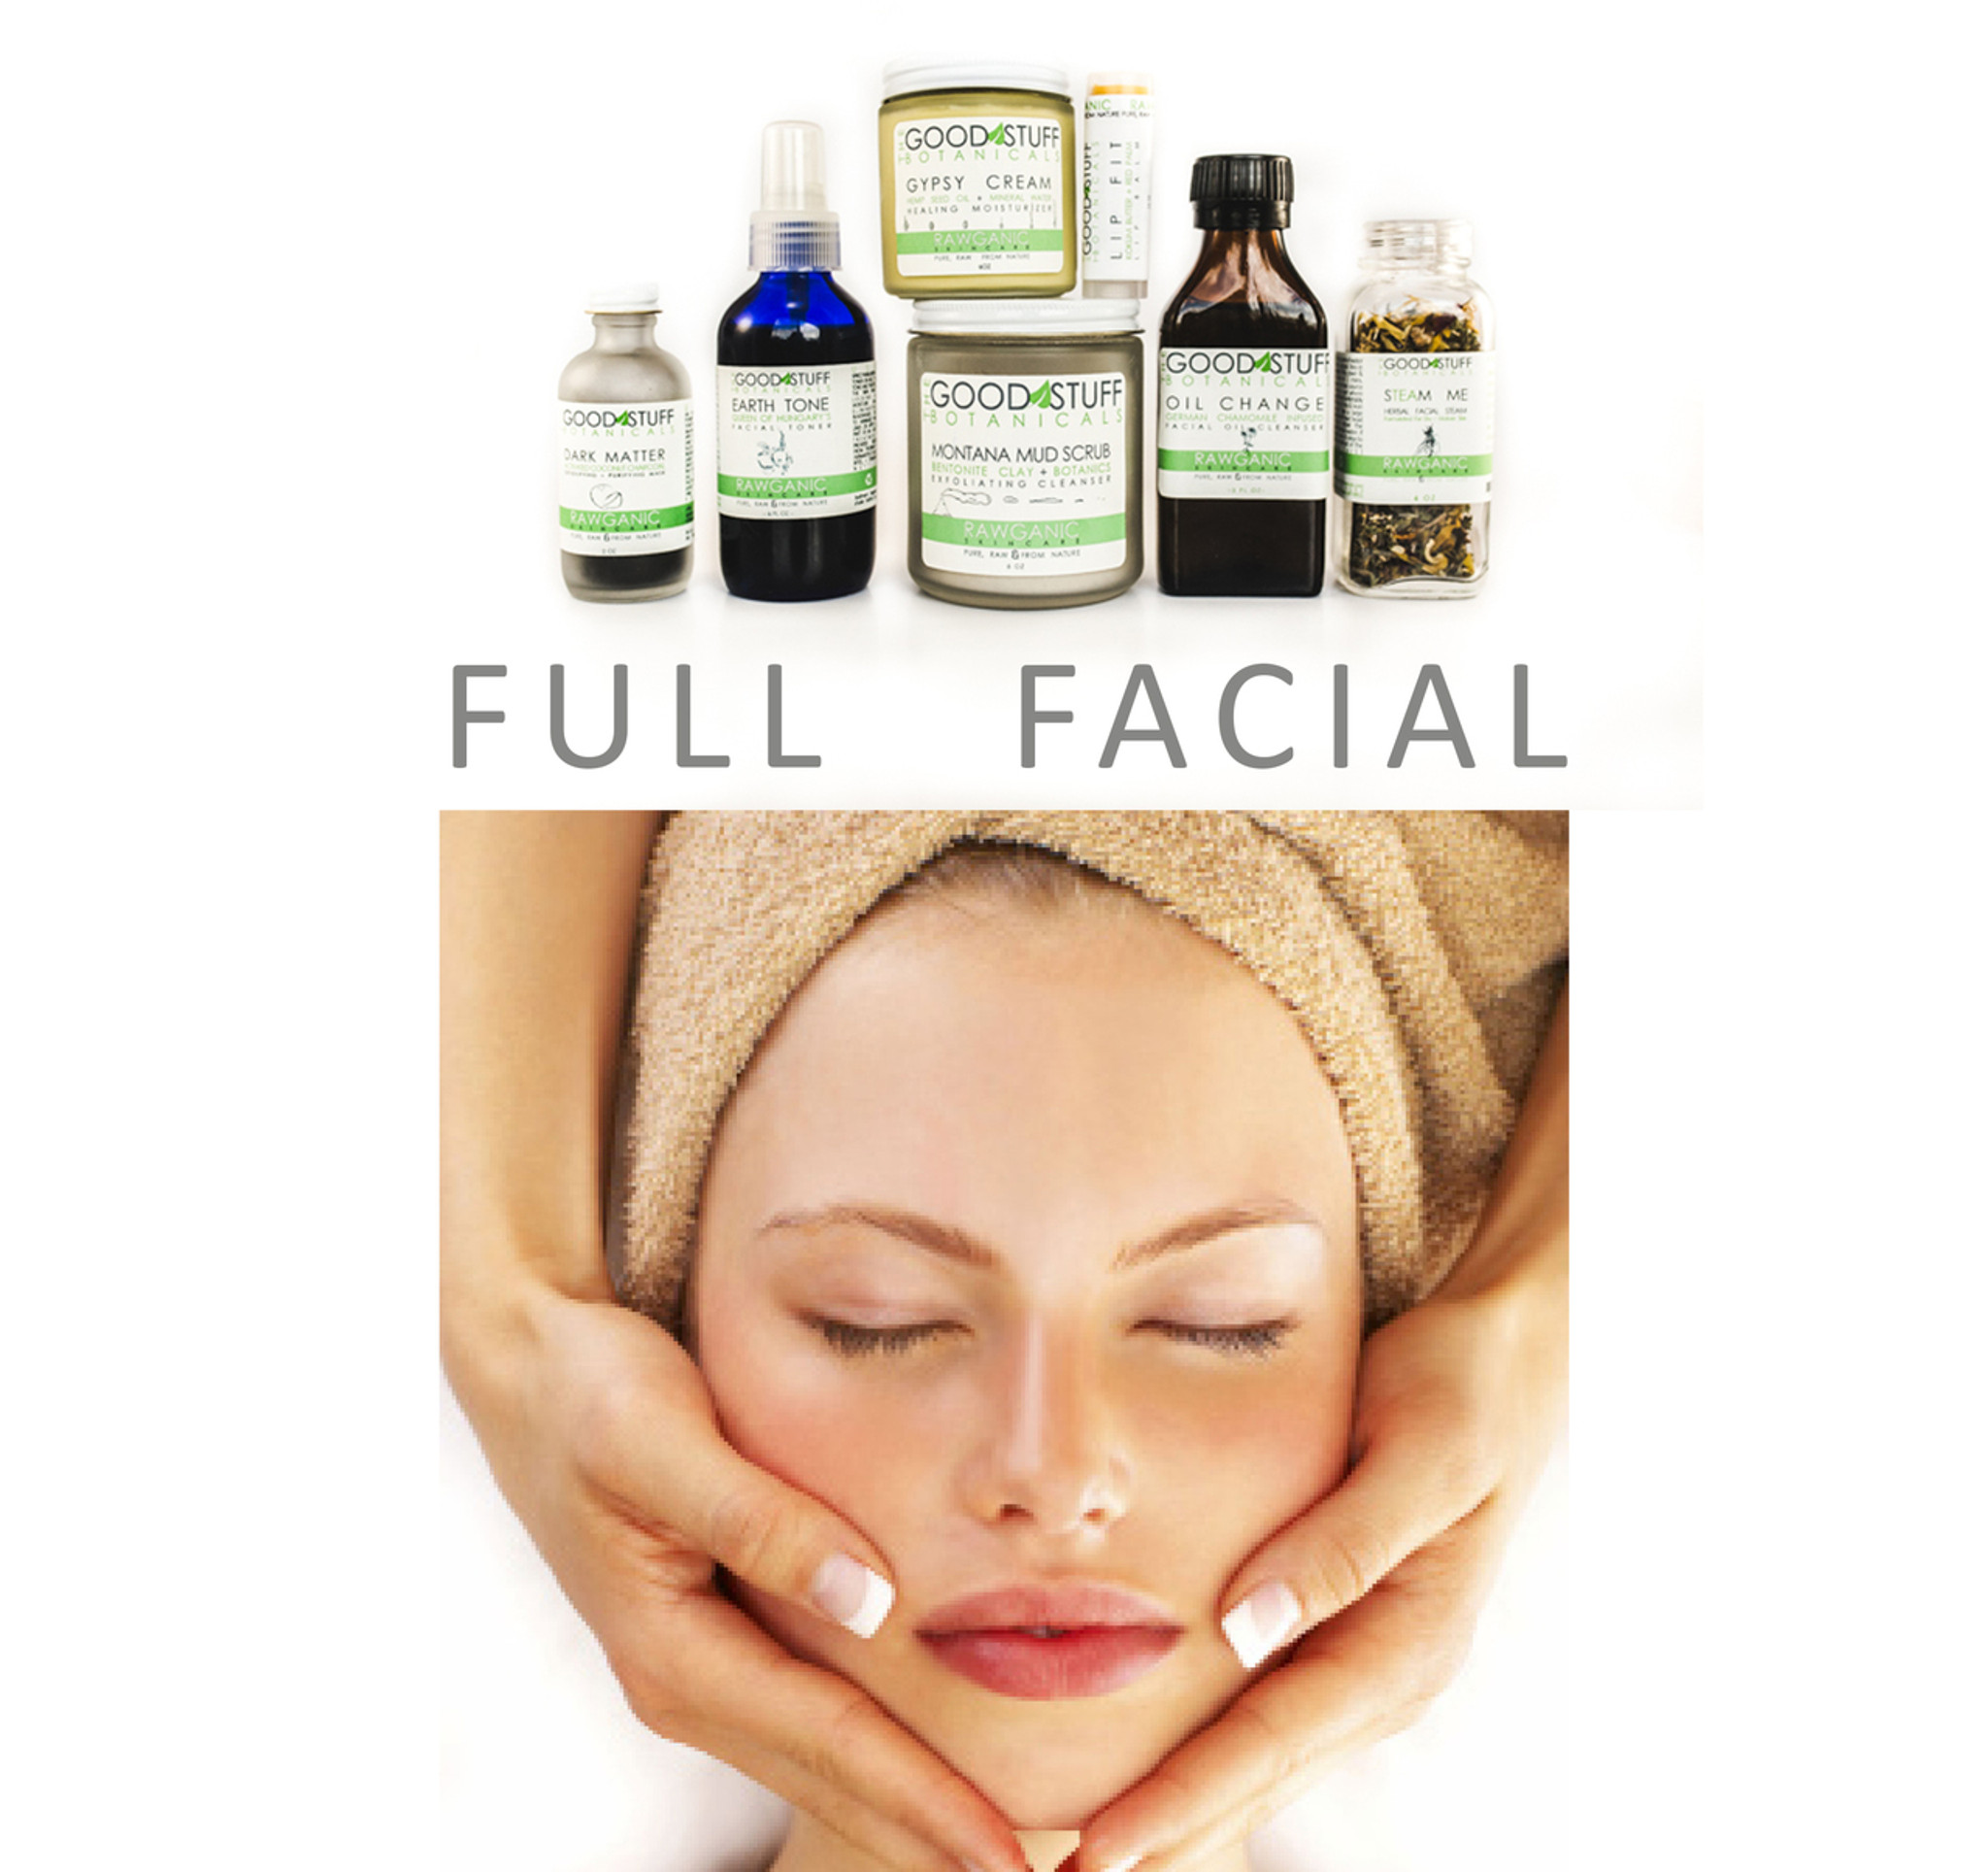 Full Facial Routine